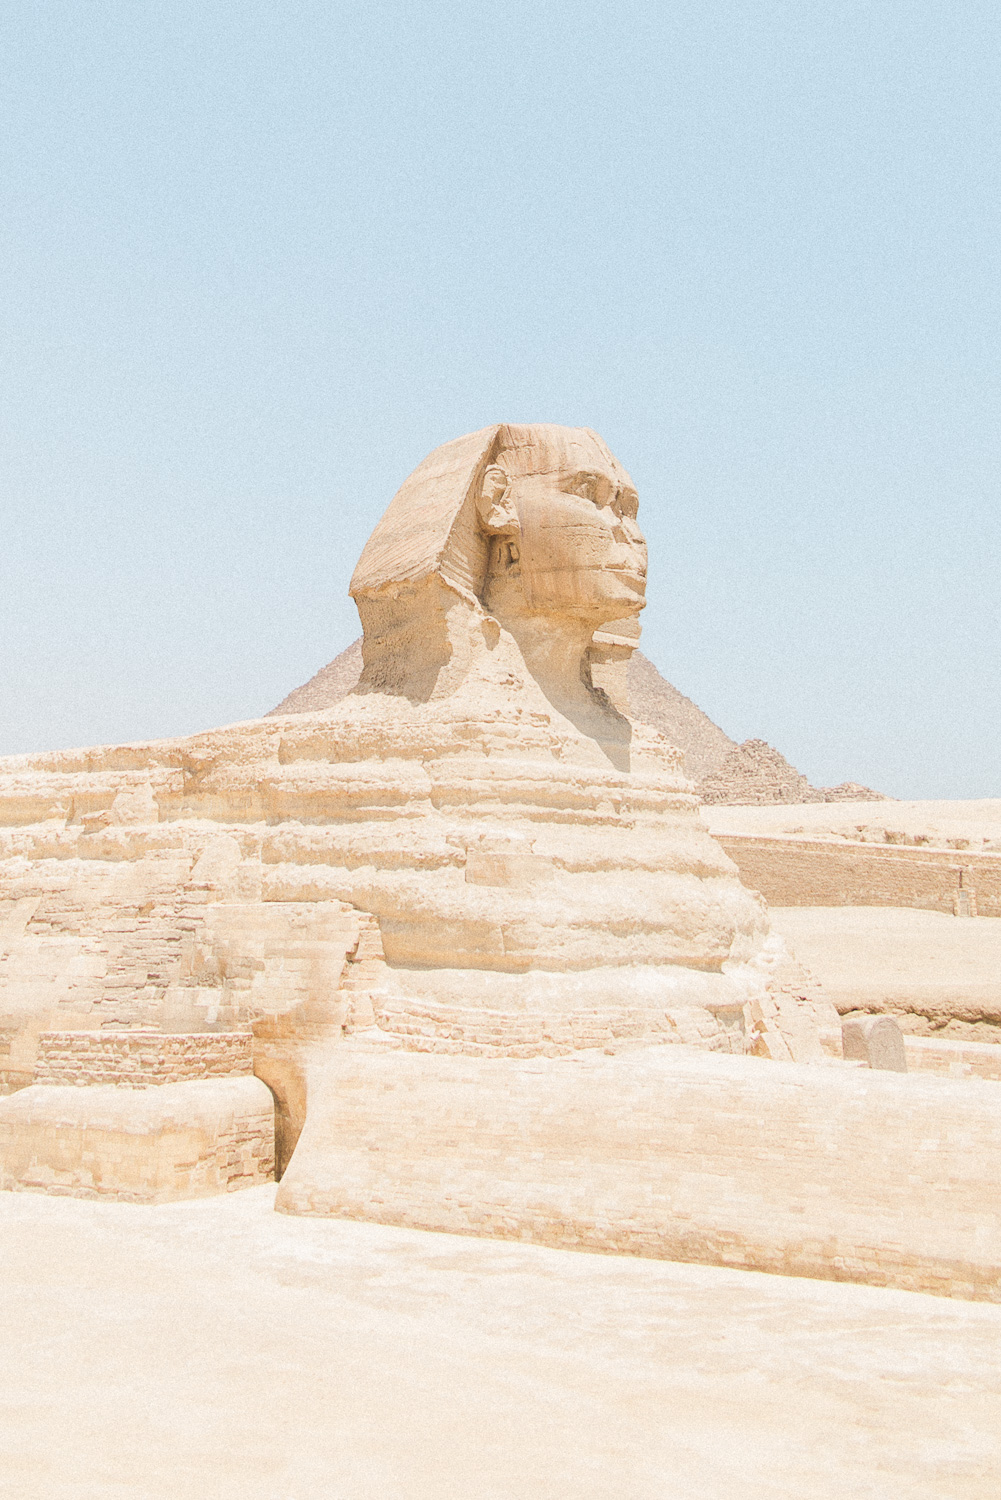 The Great Spinx of Giza in Egypt